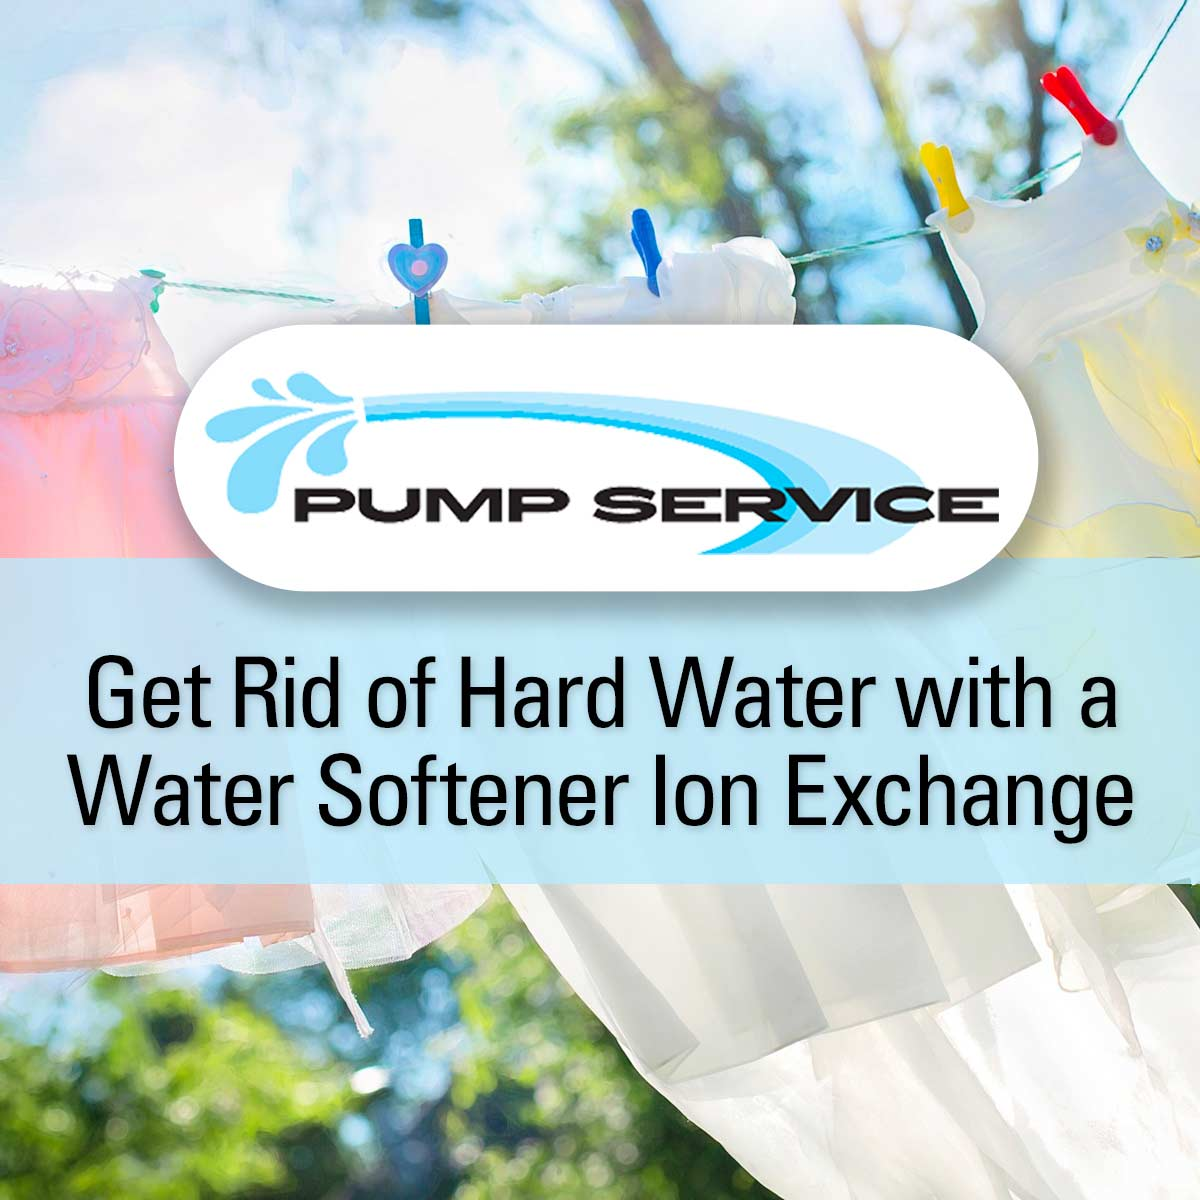 Get Rid of Hard Water with a Water Softener Ion Exchange